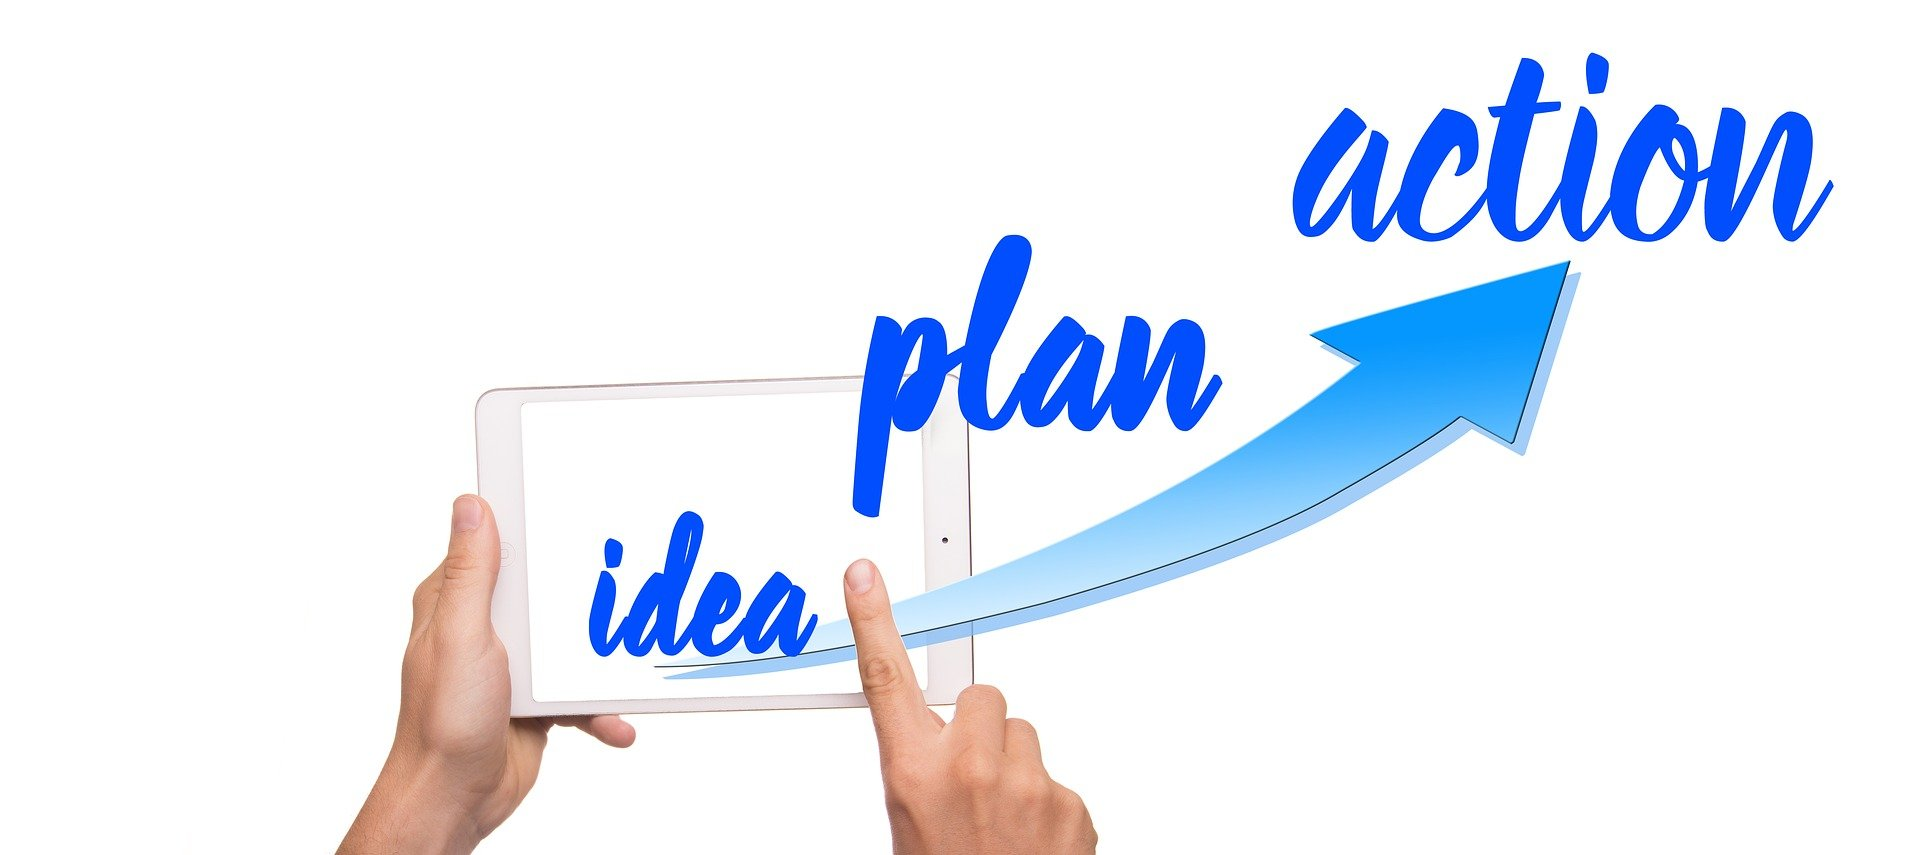 The image shows a hand on a tablet with the text idea plan action in the upward swing direction with an arrow symbol. It indicates creation of an idea followed with a  plan and action.